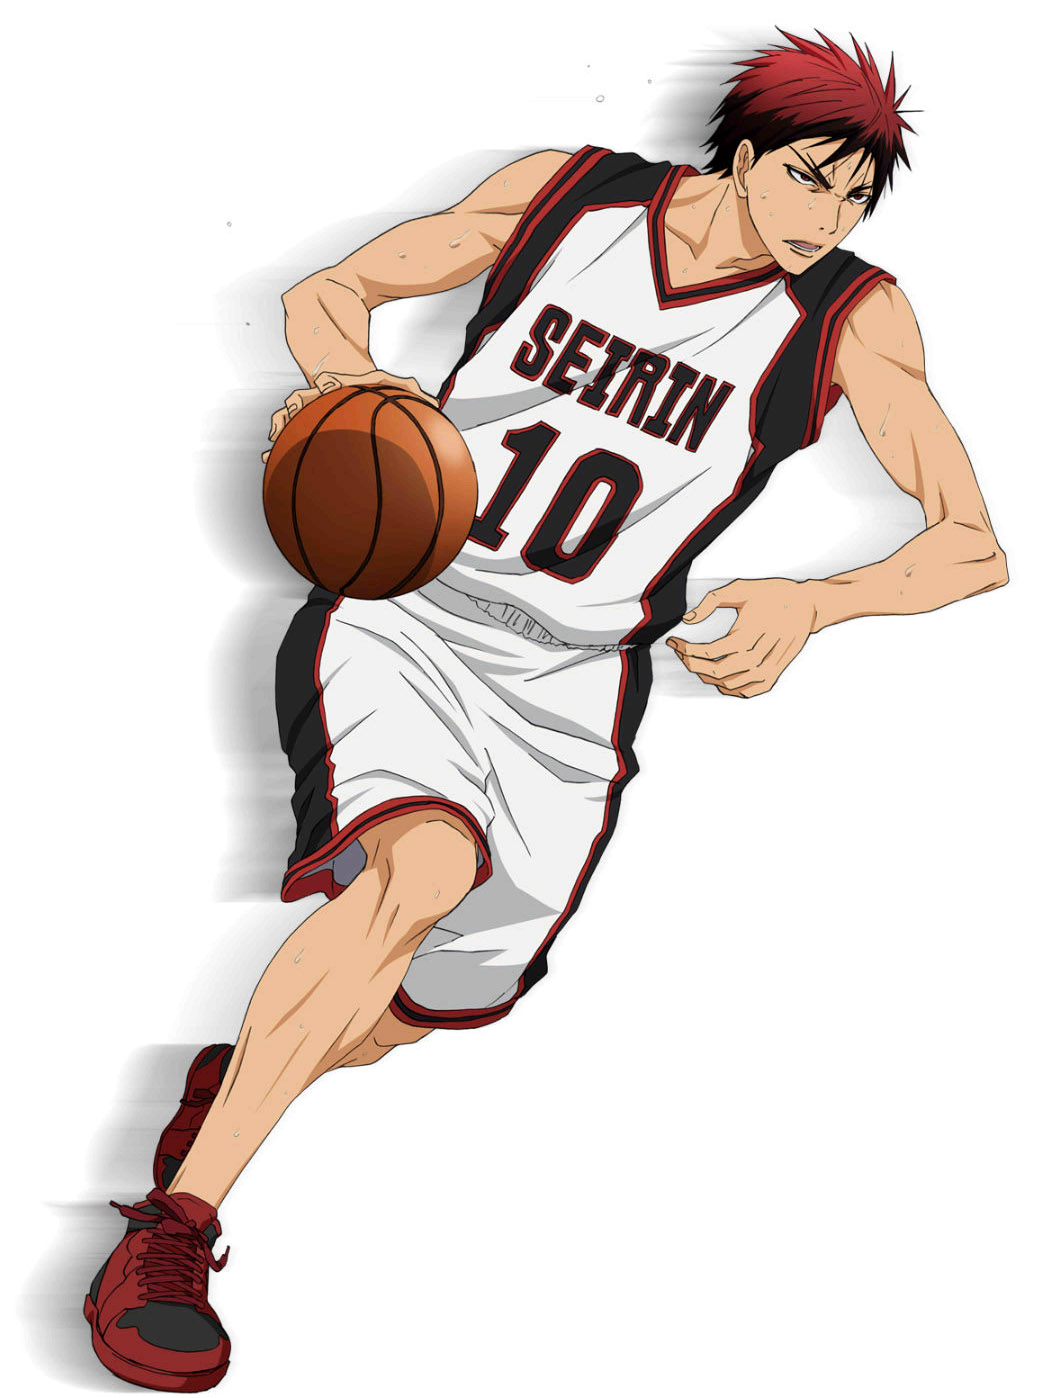 Kurokos basketball 2 episode 26 review kagami taiga poster 760x1024 kurokos basketball 2 episode 26 review voltagebd Image collections